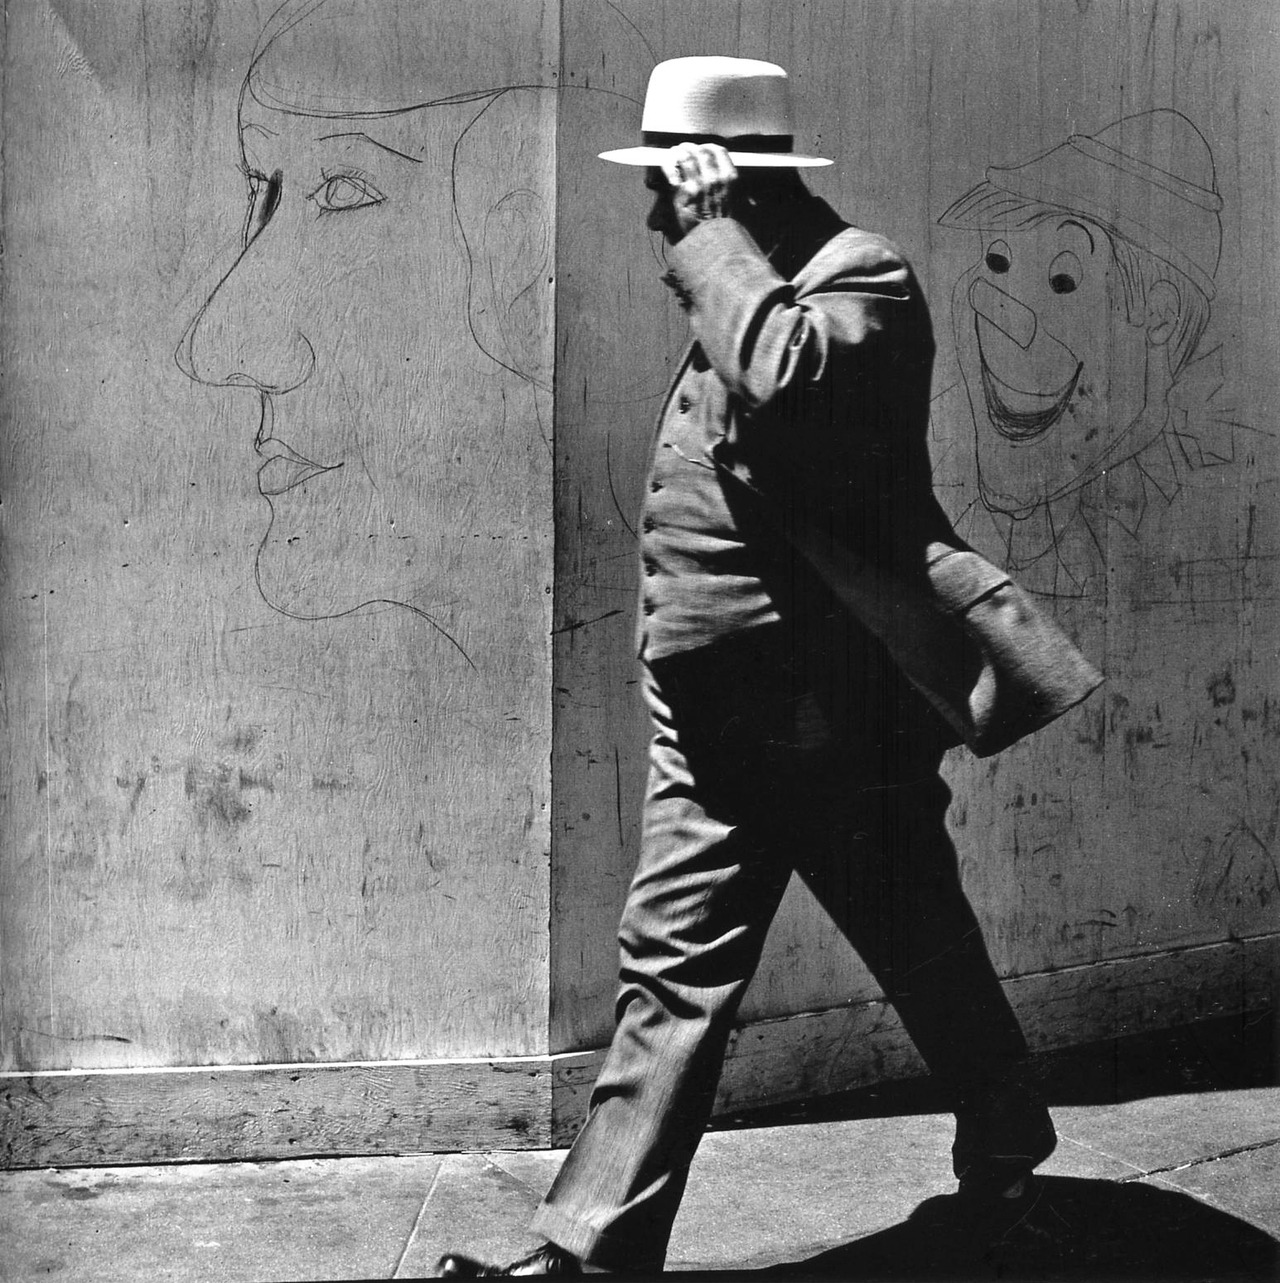 John Gutmann: Man Walking by Clown and Lady Graffiti, San Francisco, 1939